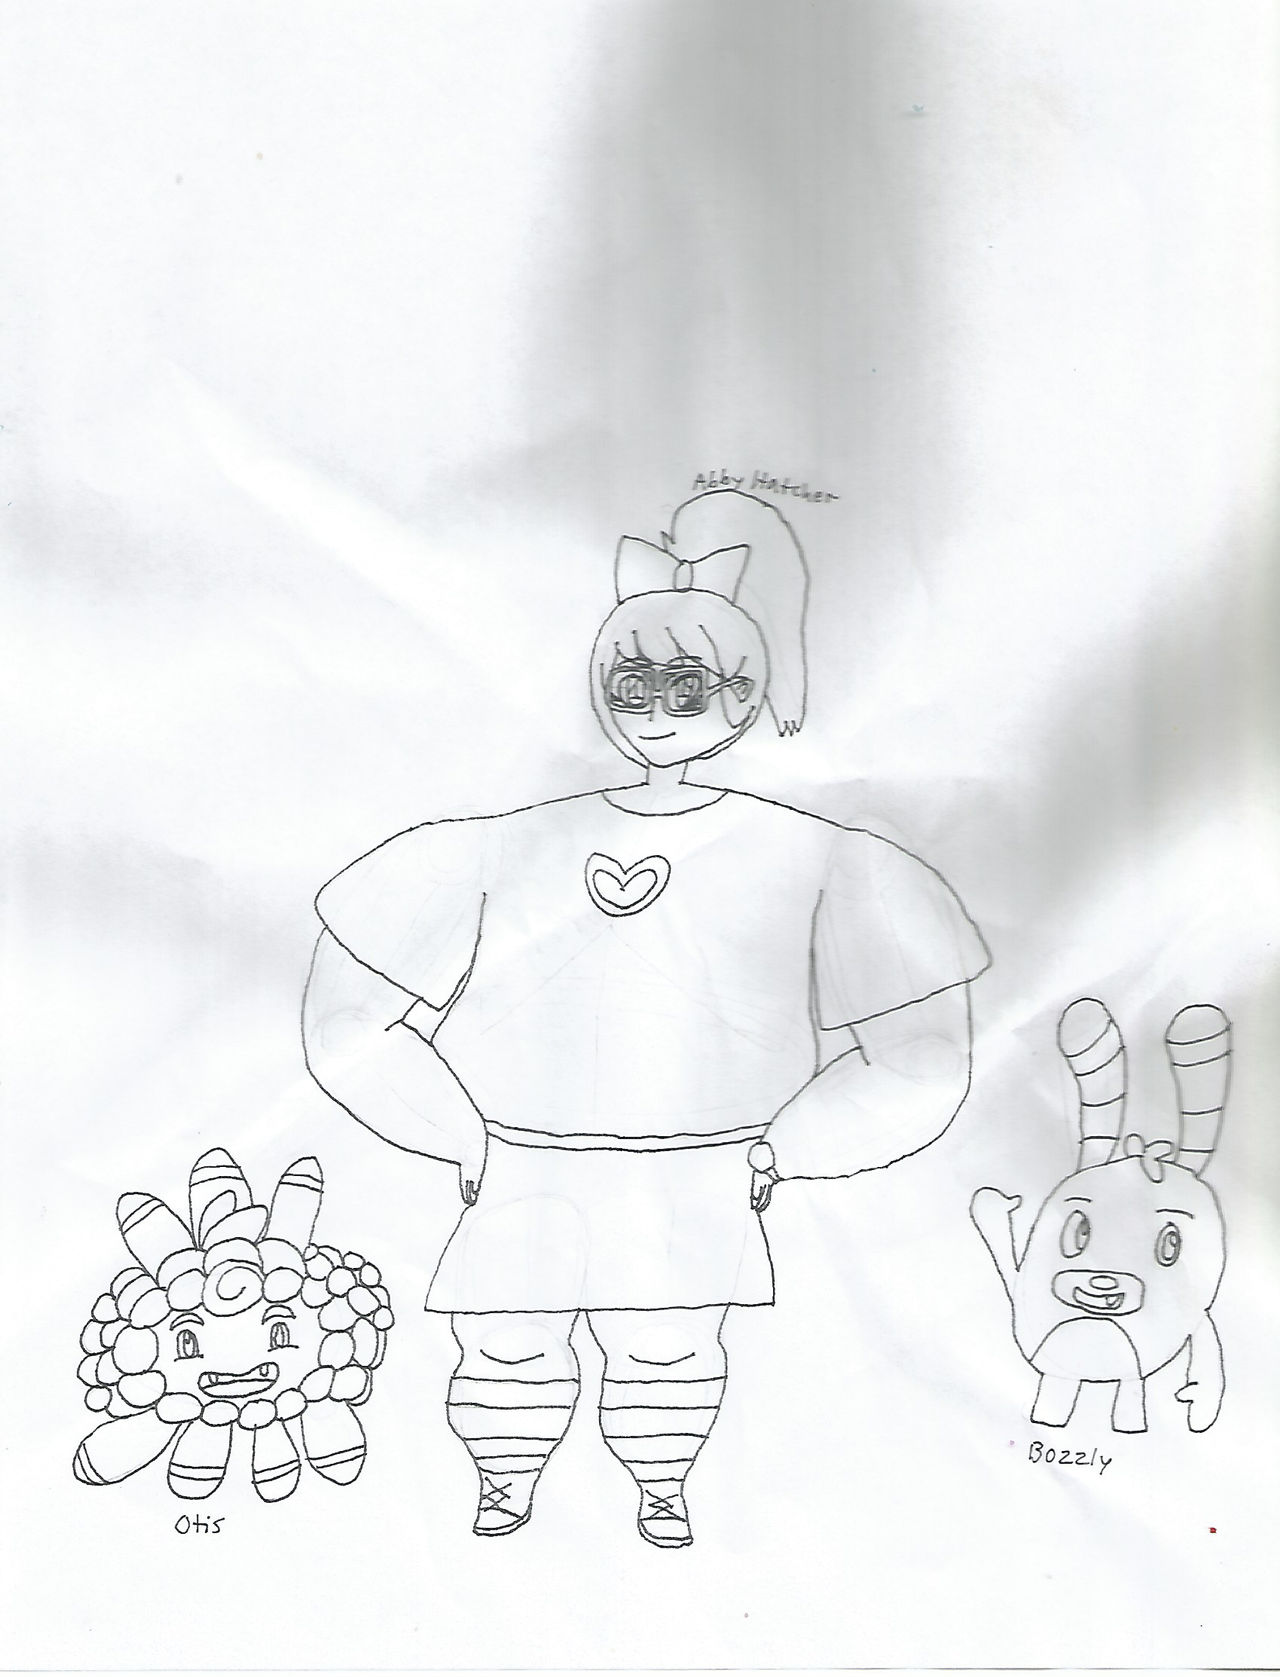 Abby Hatcher with Bozzly and Otis by Teanster1 on DeviantArt